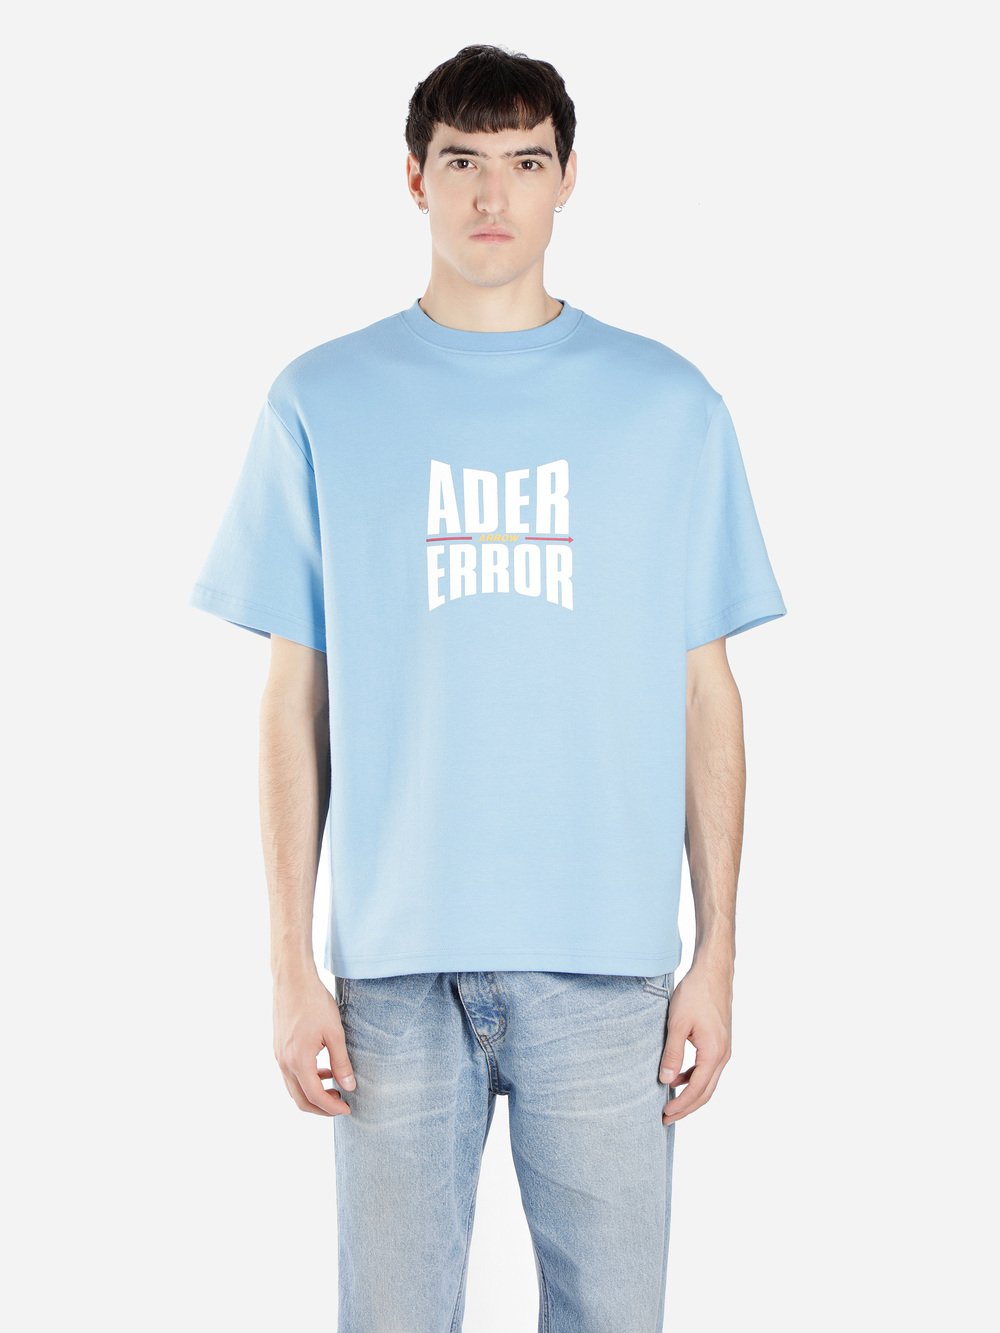 Ader Error T-shirts ADER ERROR T-SHIRTS